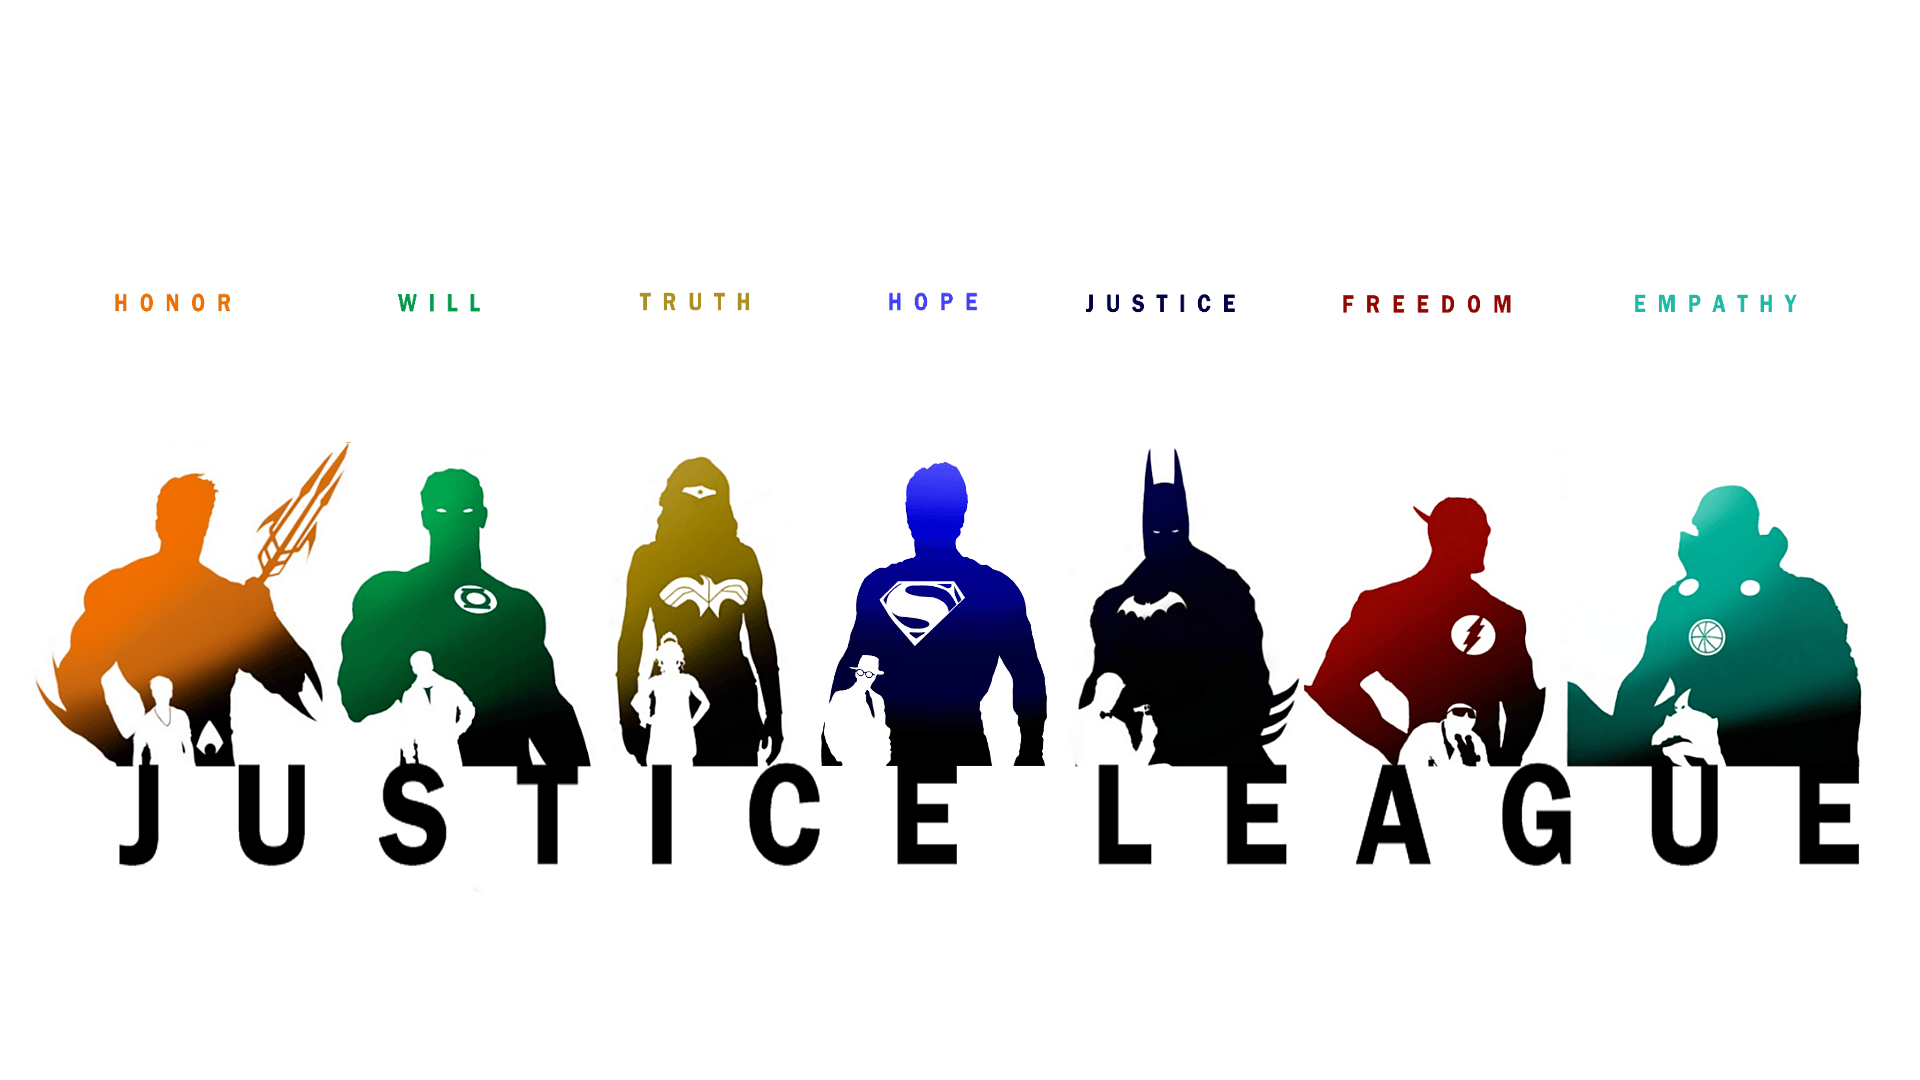 Hd wallpaper justice league - Justice League By Stevegarciaart On Deviantart